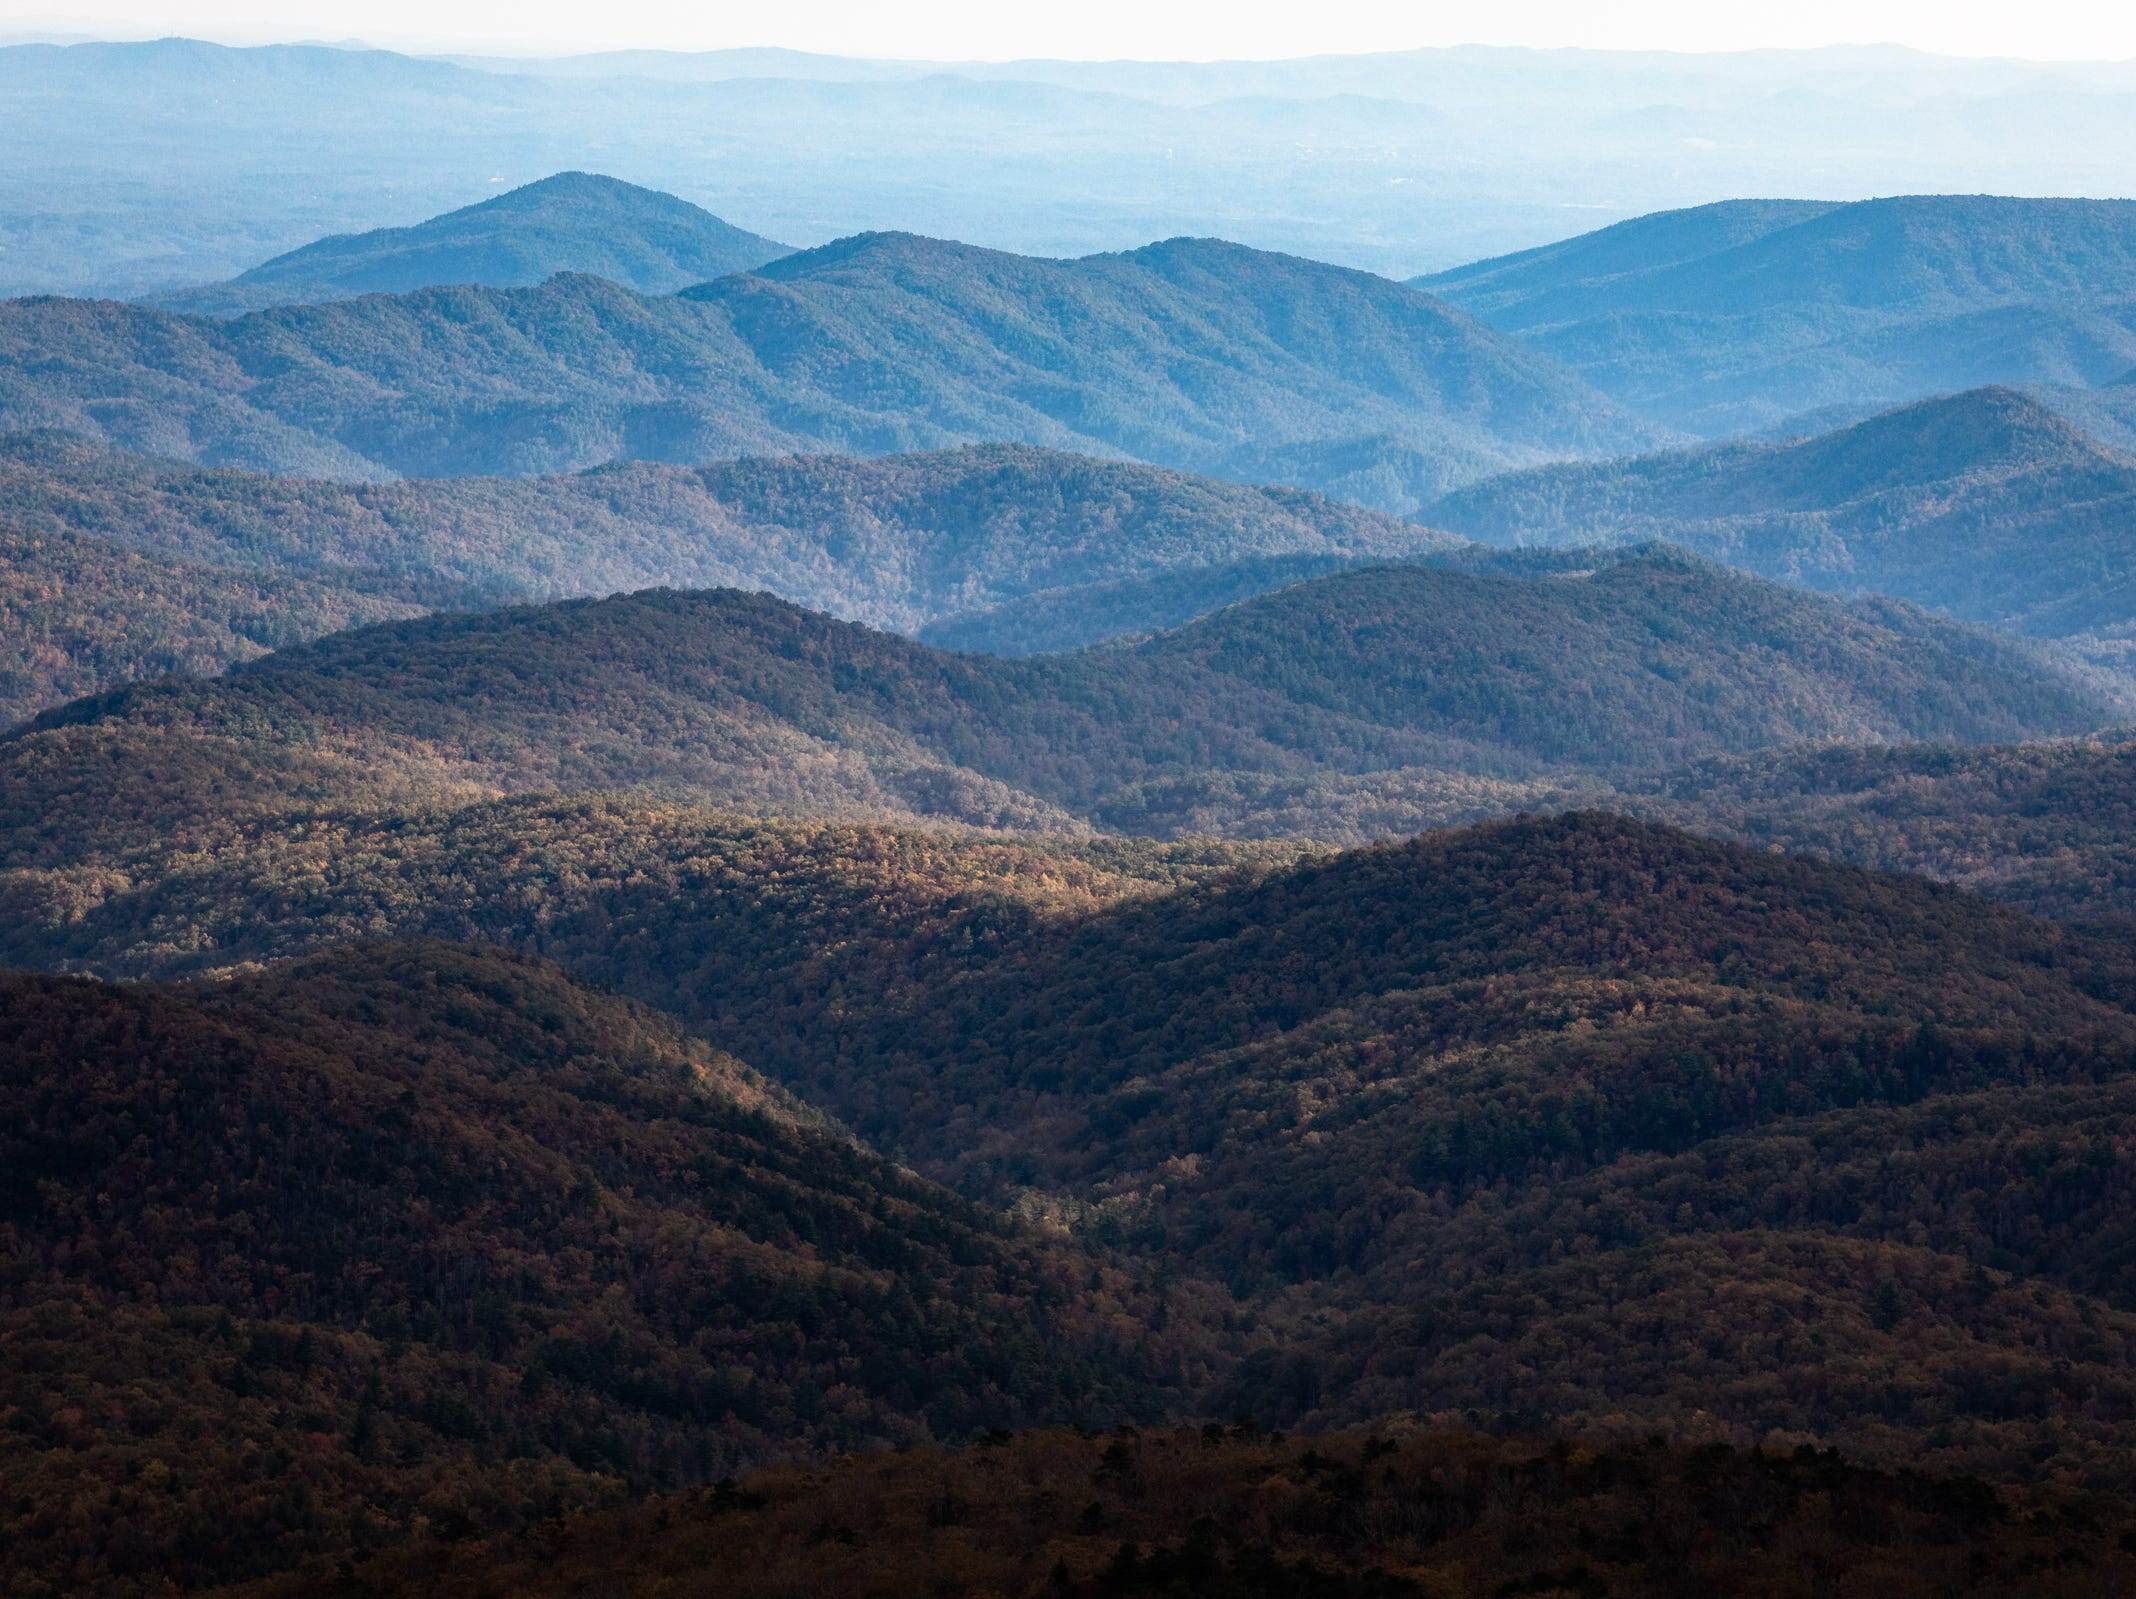 Sun sweeps across the mountains as seen from Rough Ridge on the Blue Ridge Parkway Oct. 28, 2018.